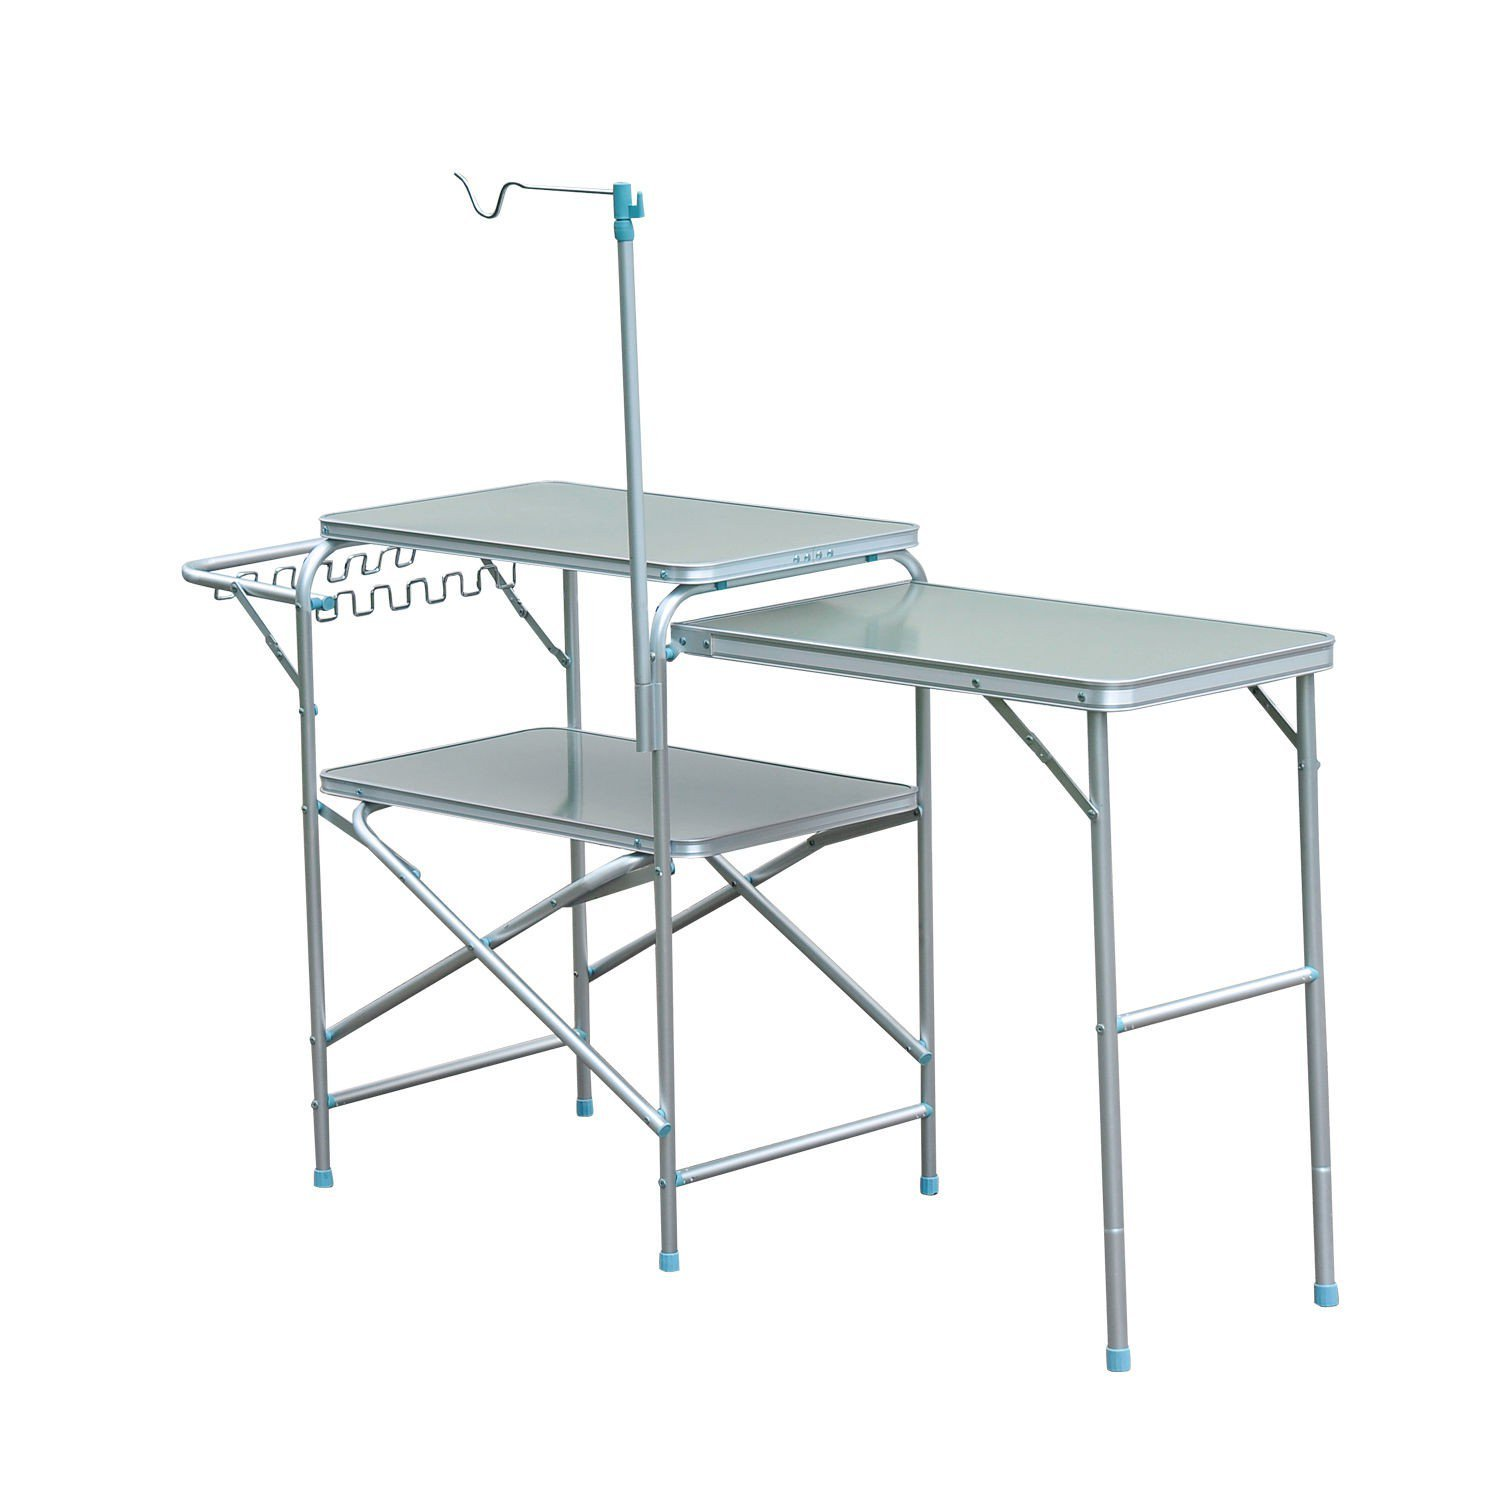 Portable 6' Fold-Up Camping Kitchen Table Backyard Party With Ebook